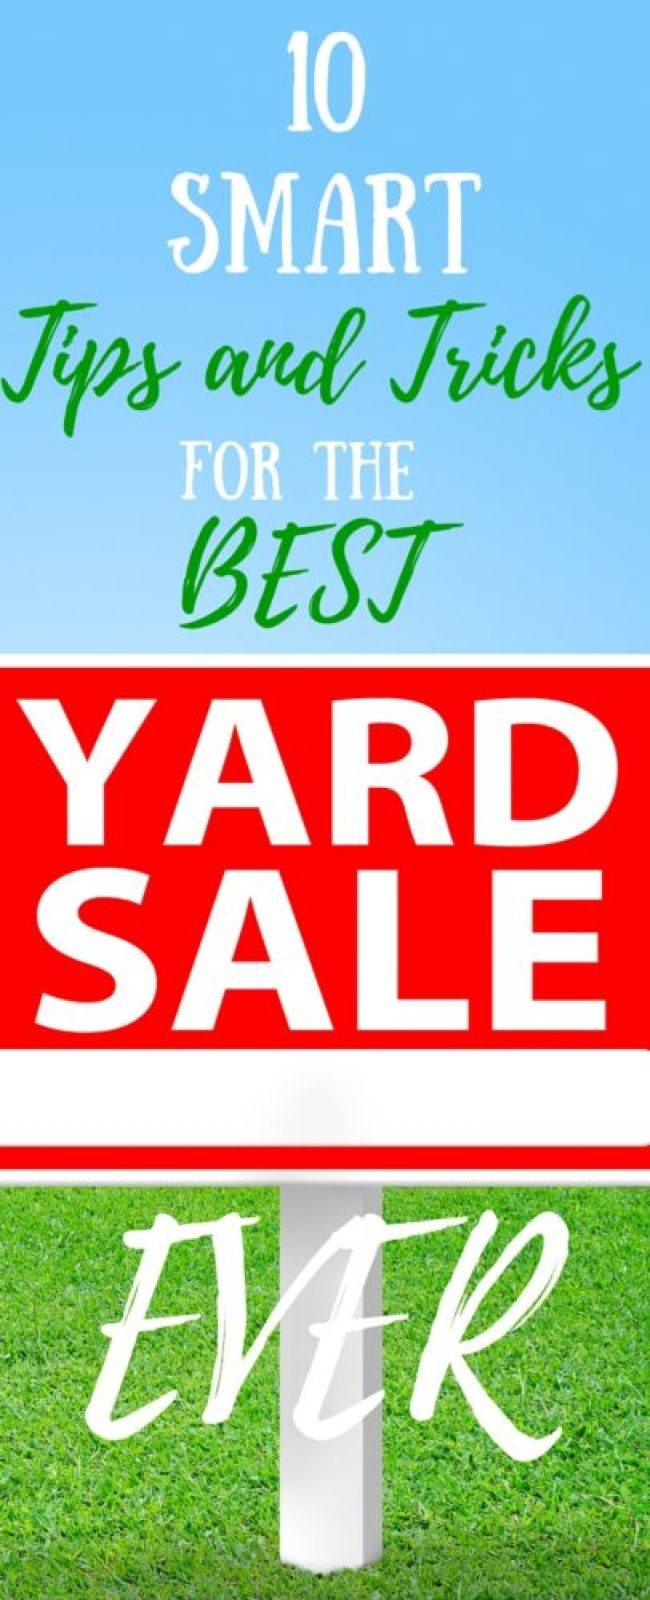 Make your yard sale this summer the BEST one ever with these 10 smart tips and tricks for the best yard sale ever.